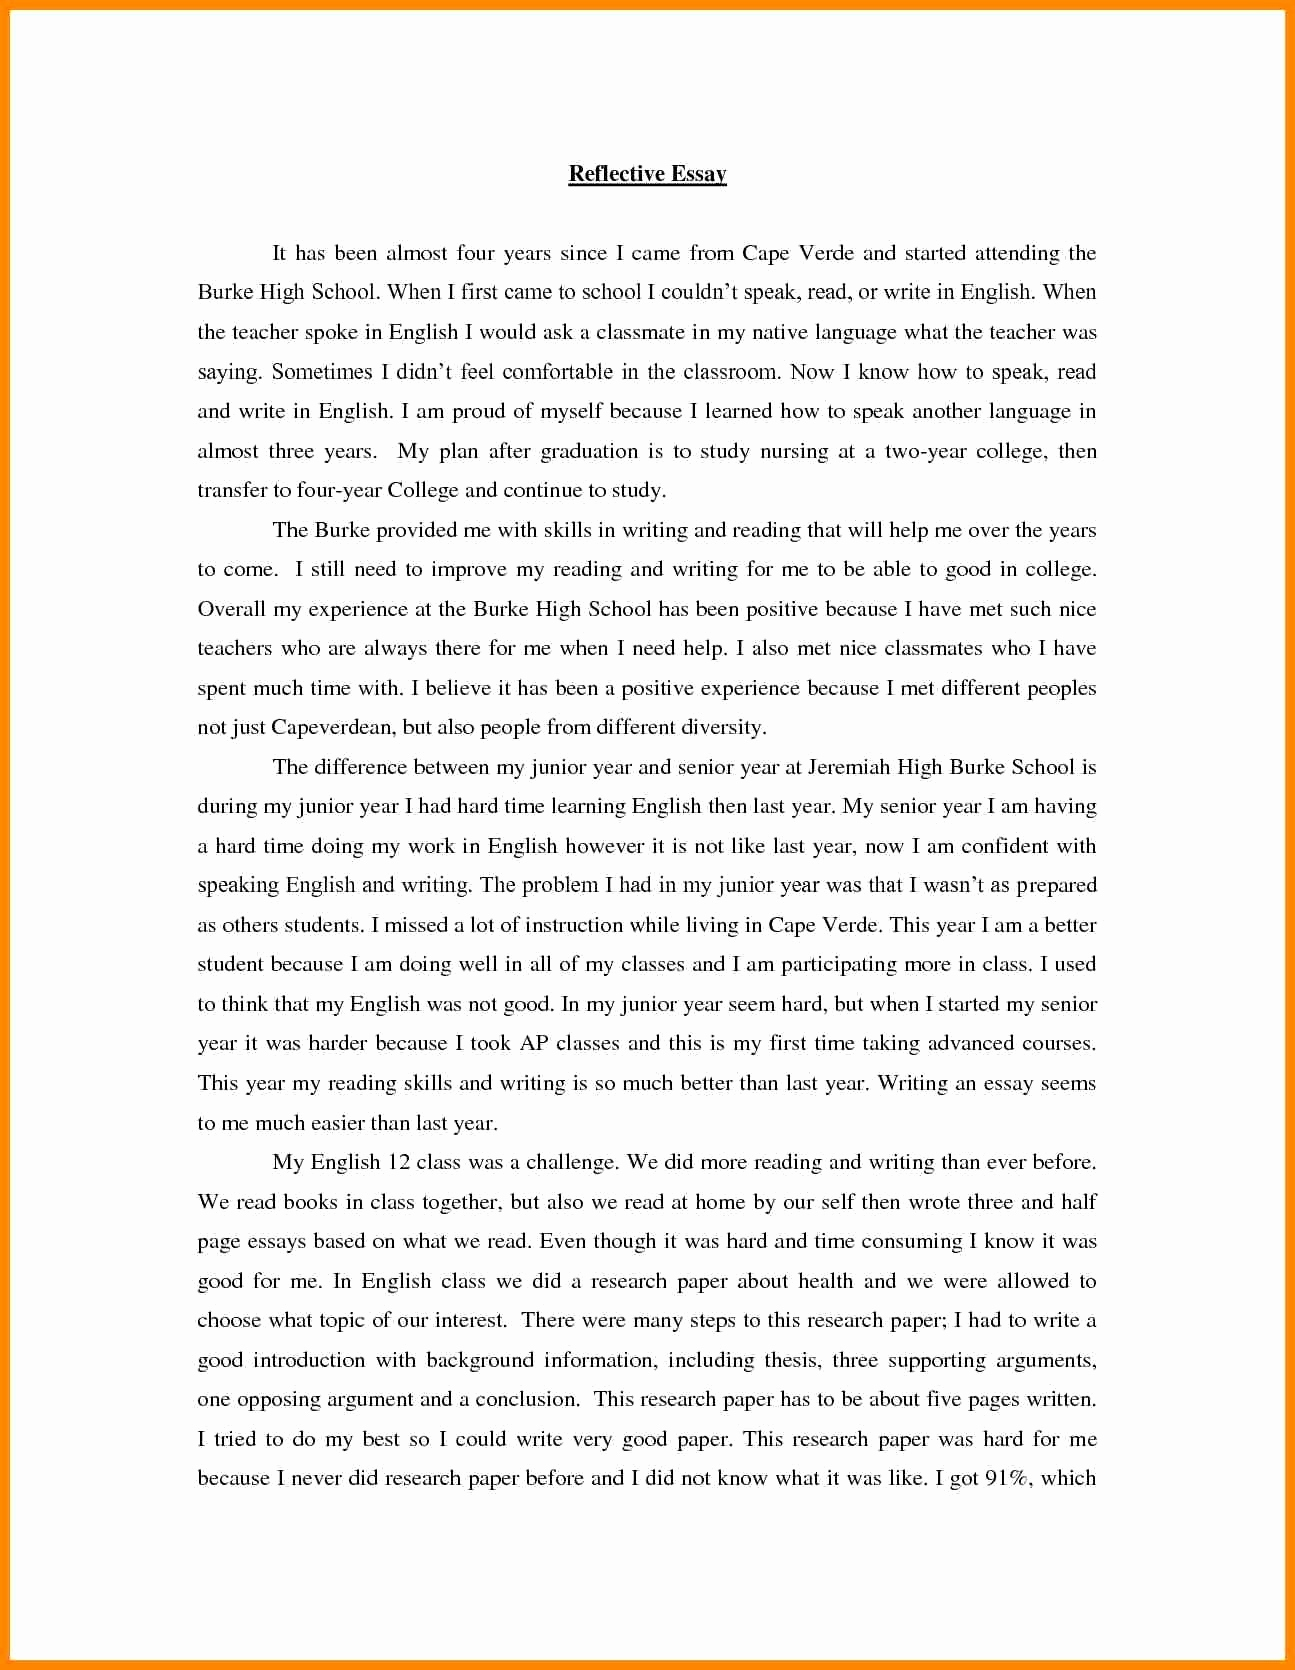 015 What Is Proposal Argument Essay Sample Term Paper Academic Service Argumentative Examples For High School Luxury Fresh Catcher In The Free Pdf Example Onrtion College Excellent A Full